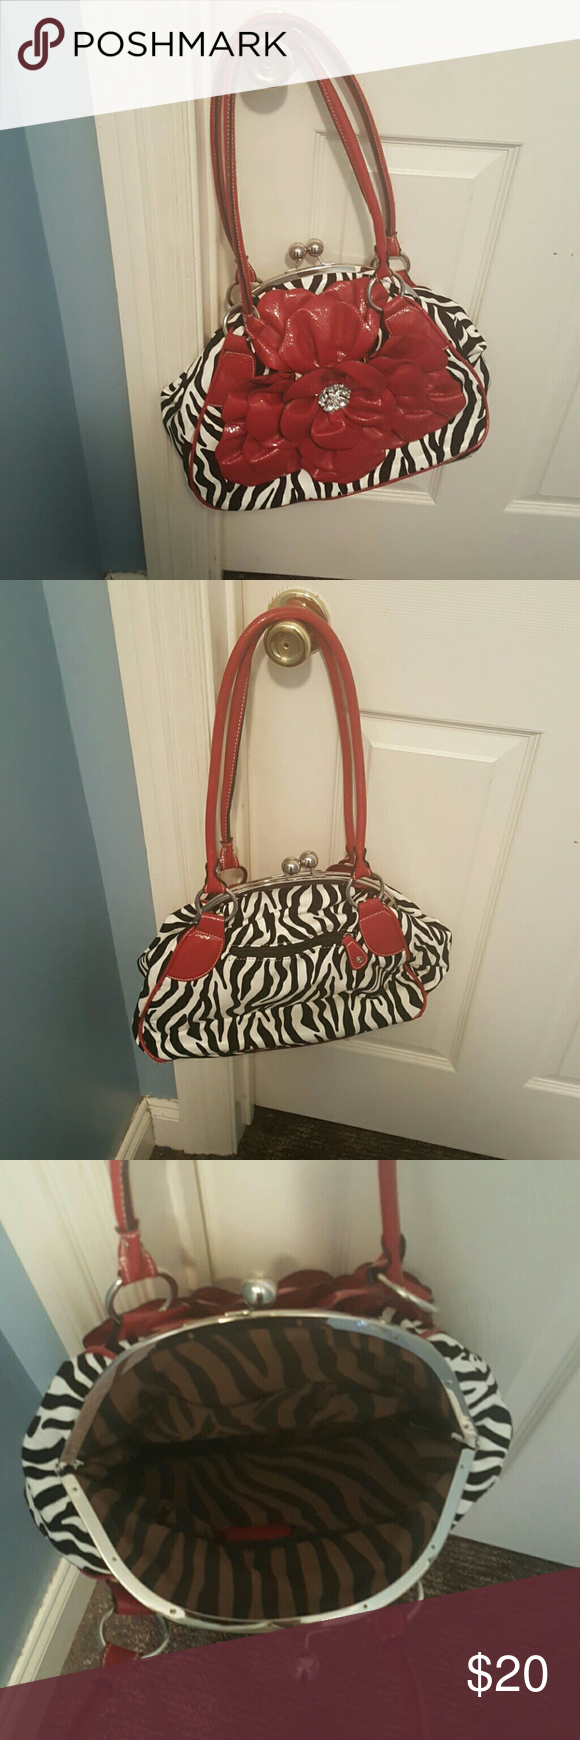 zebra print purse zebra print purse with red flower on front Bags Shoulder Bags